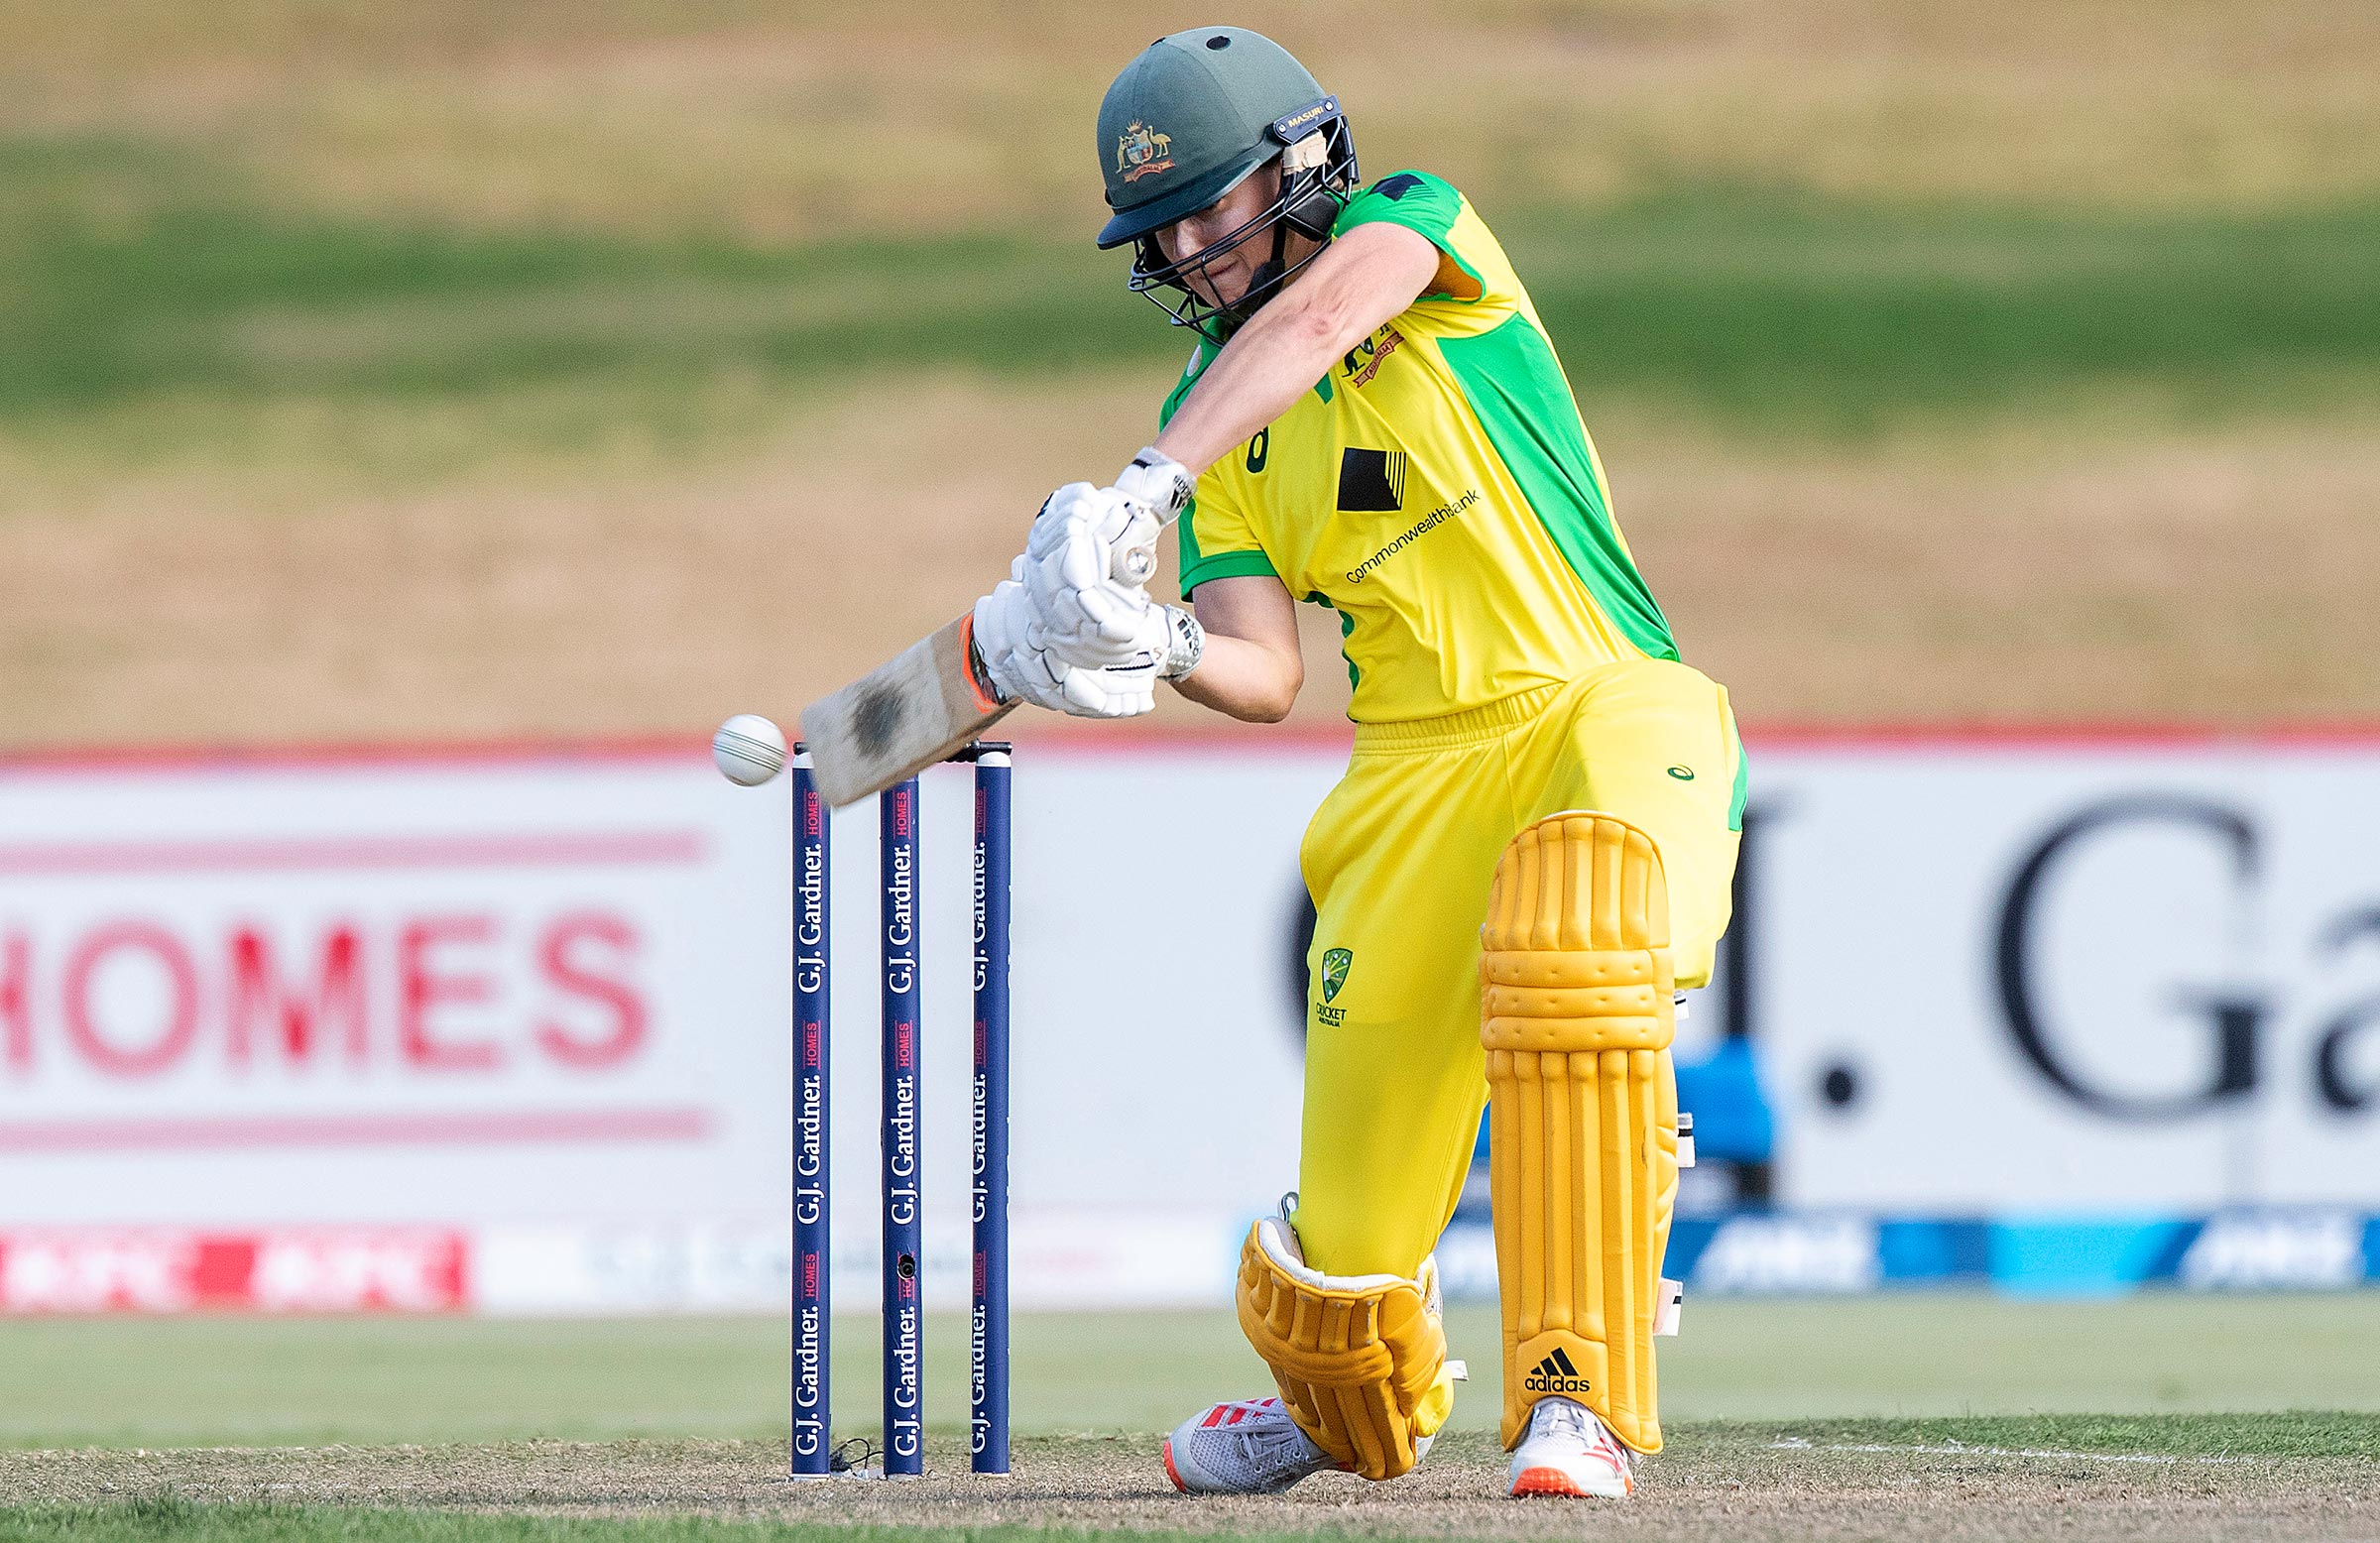 Perry steered Australia home in the run chase // Getty